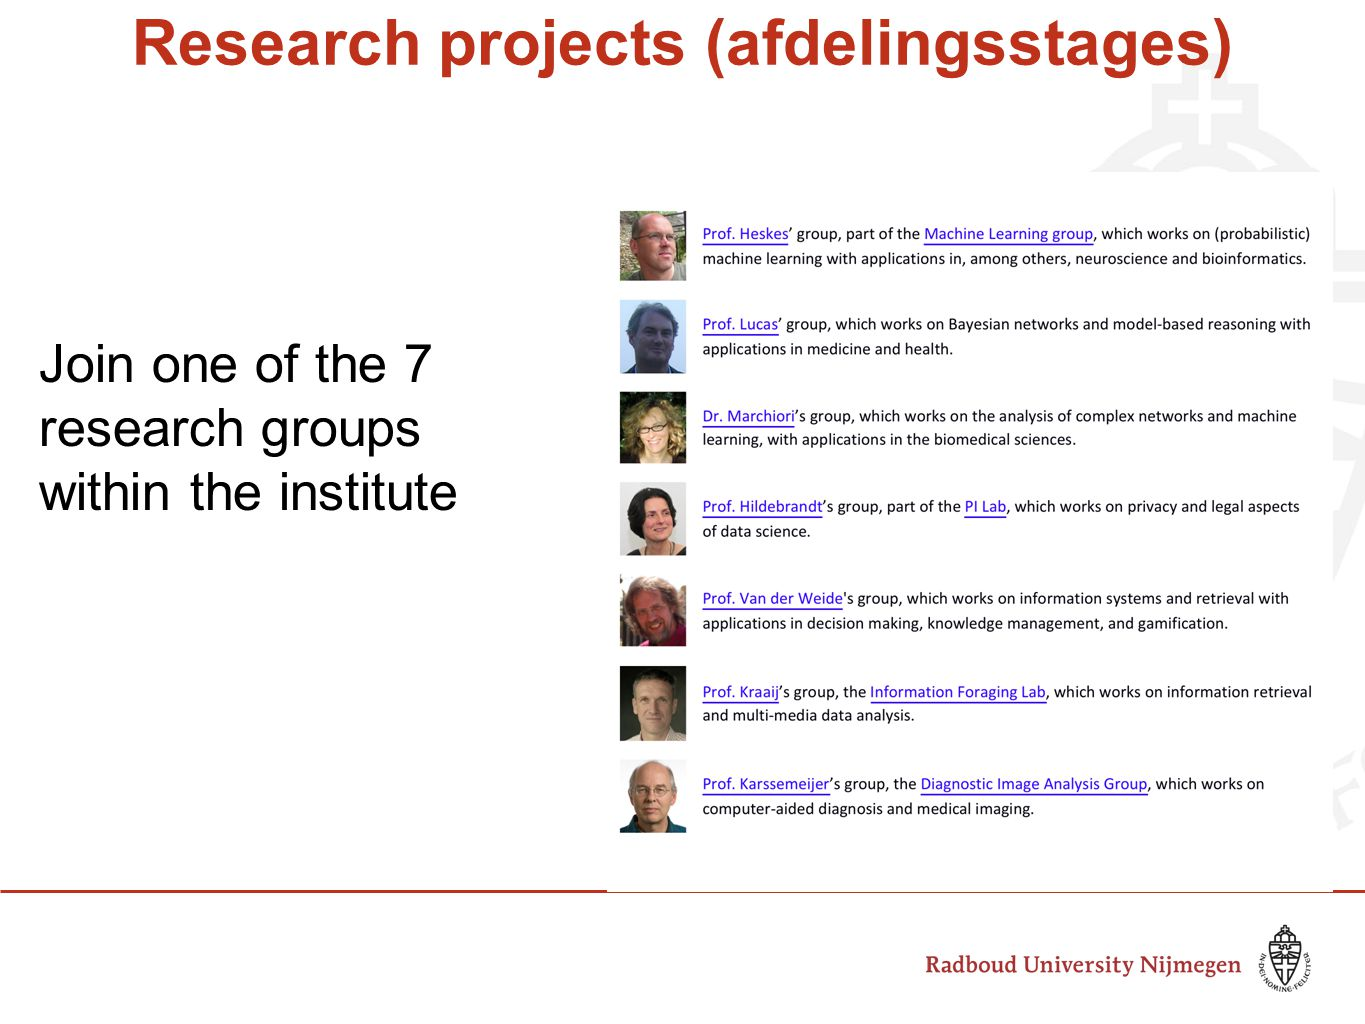 Research projects (afdelingsstages) Join one of the 7 research groups within the institute